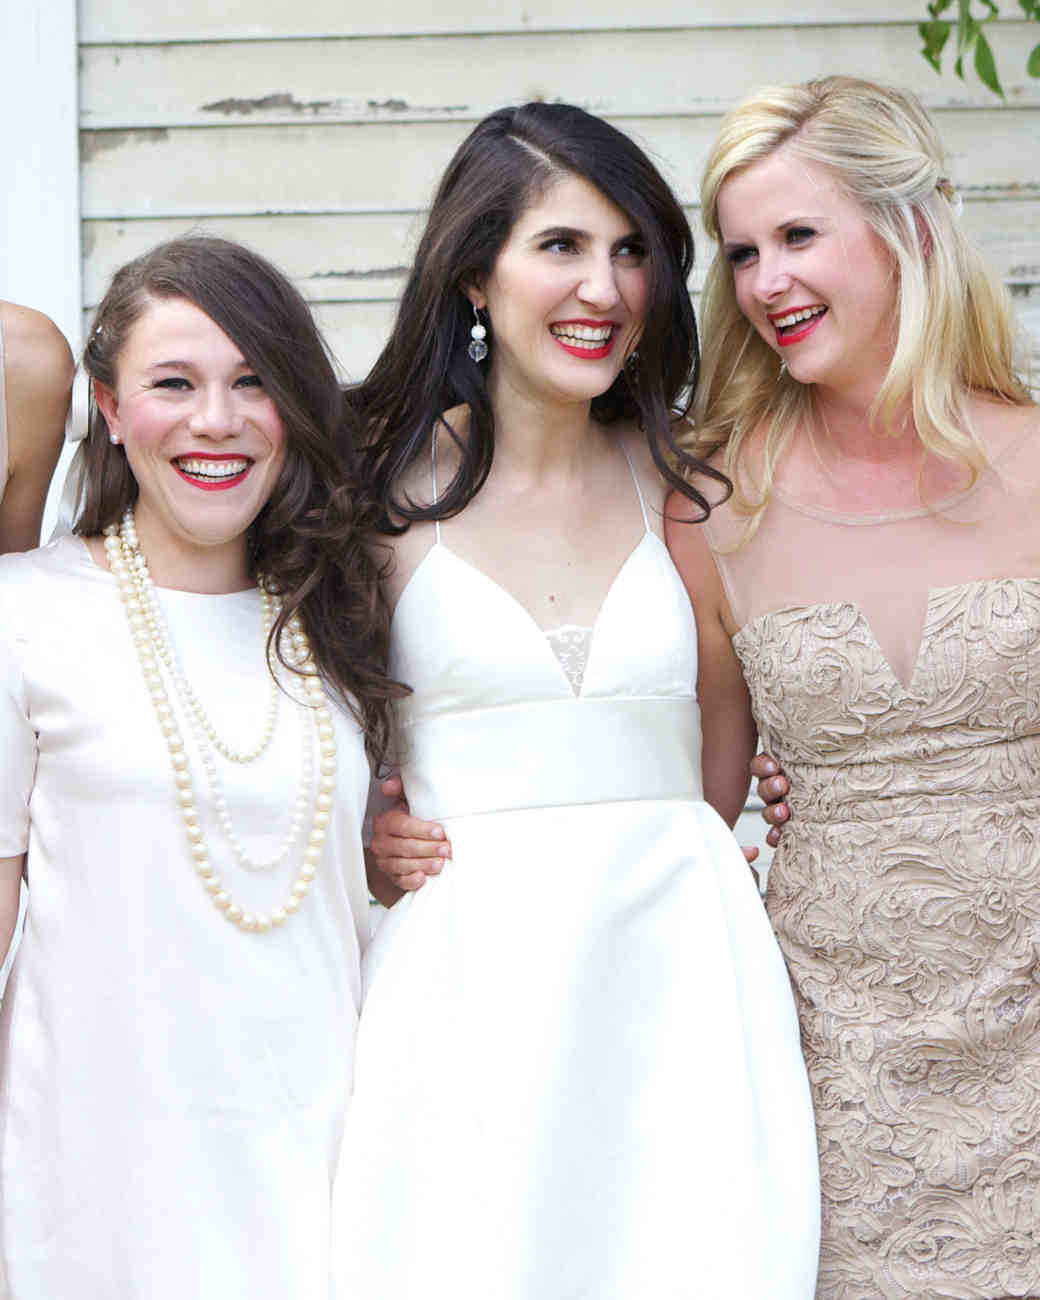 12 New Rules for Dressing Your Bridesmaids | Martha Stewart Weddings